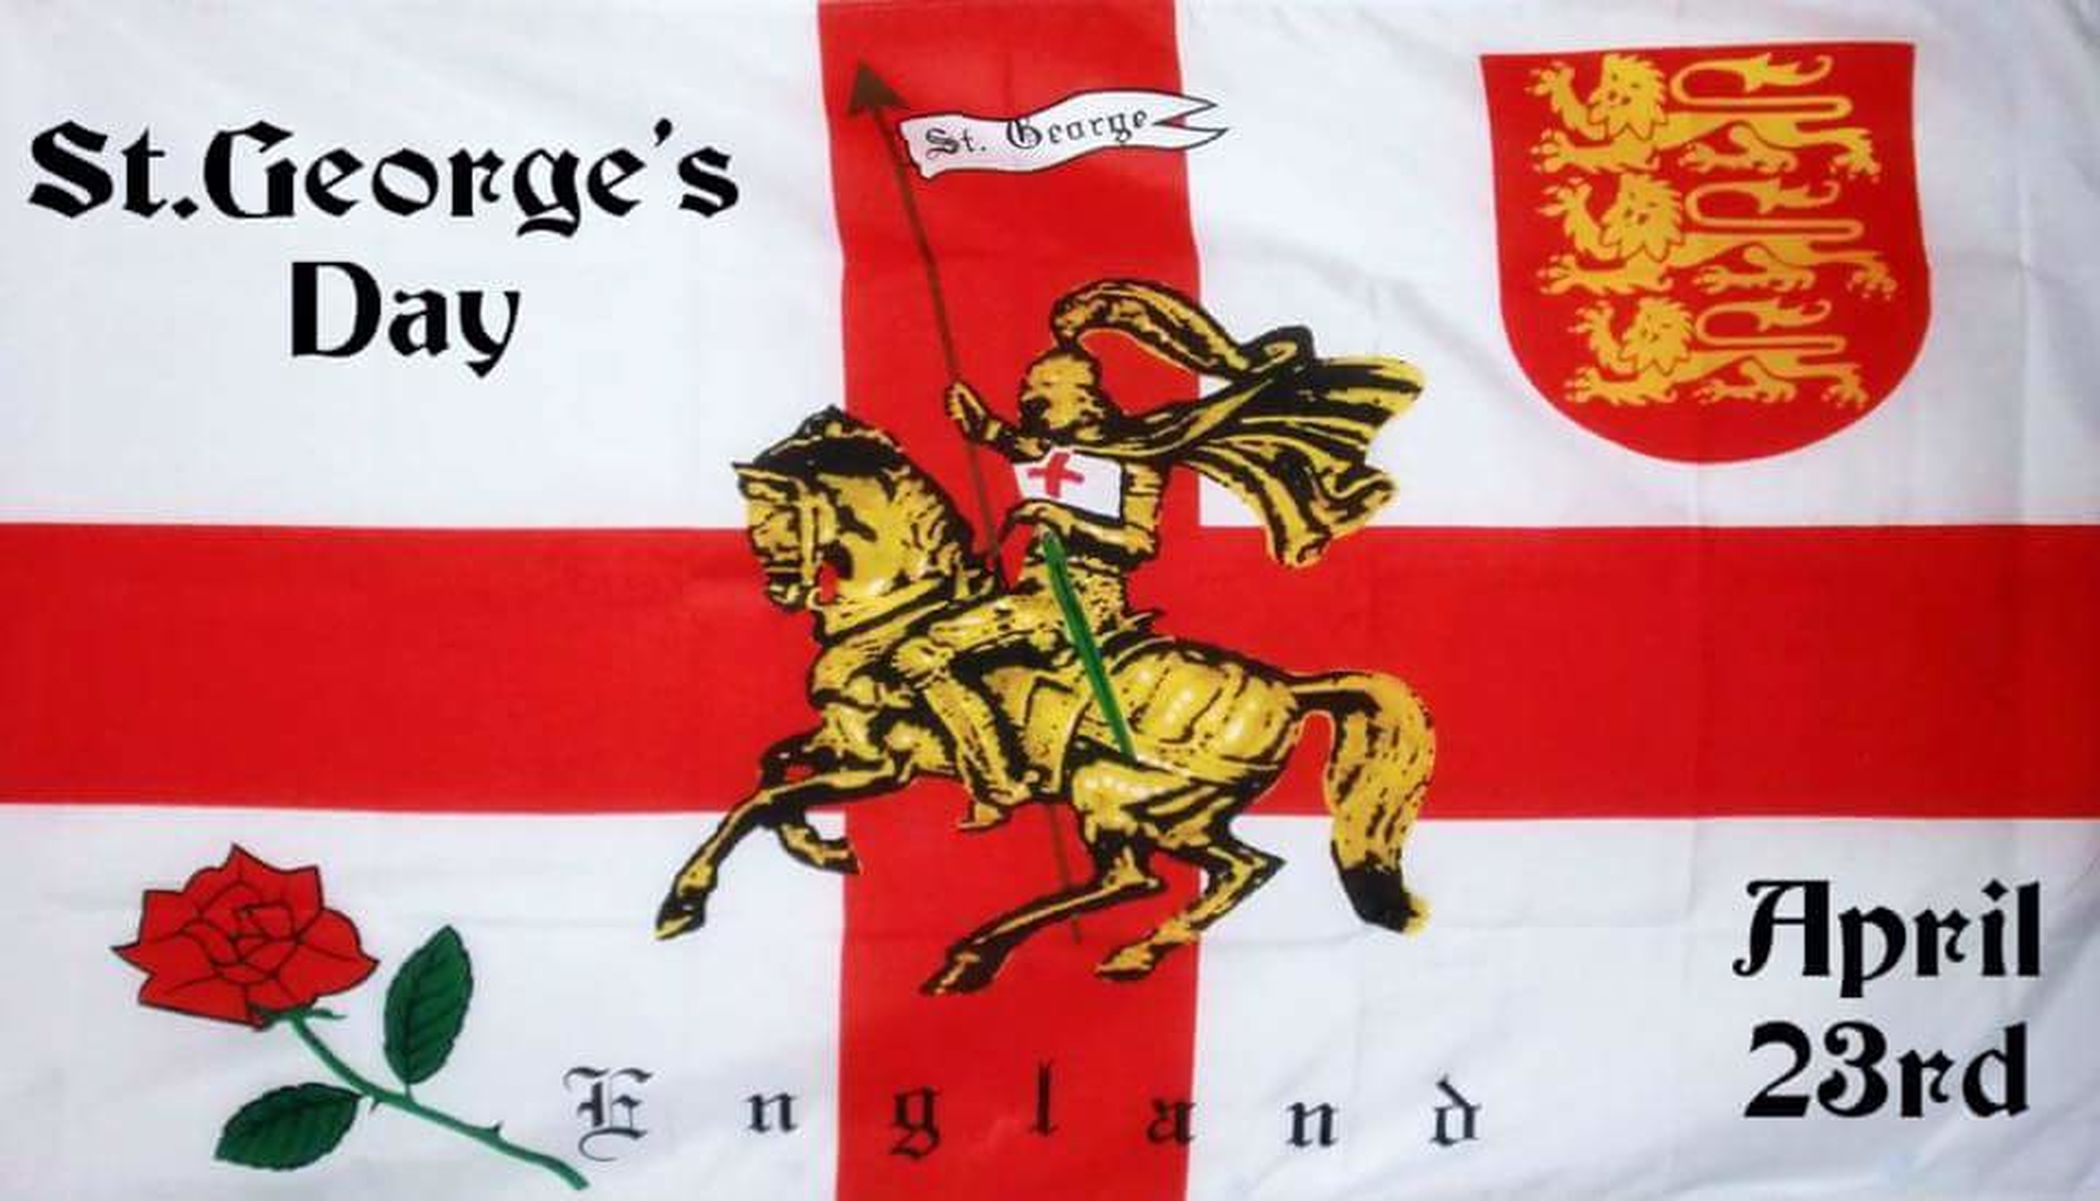 Happy St George's day everyone St Georges Day